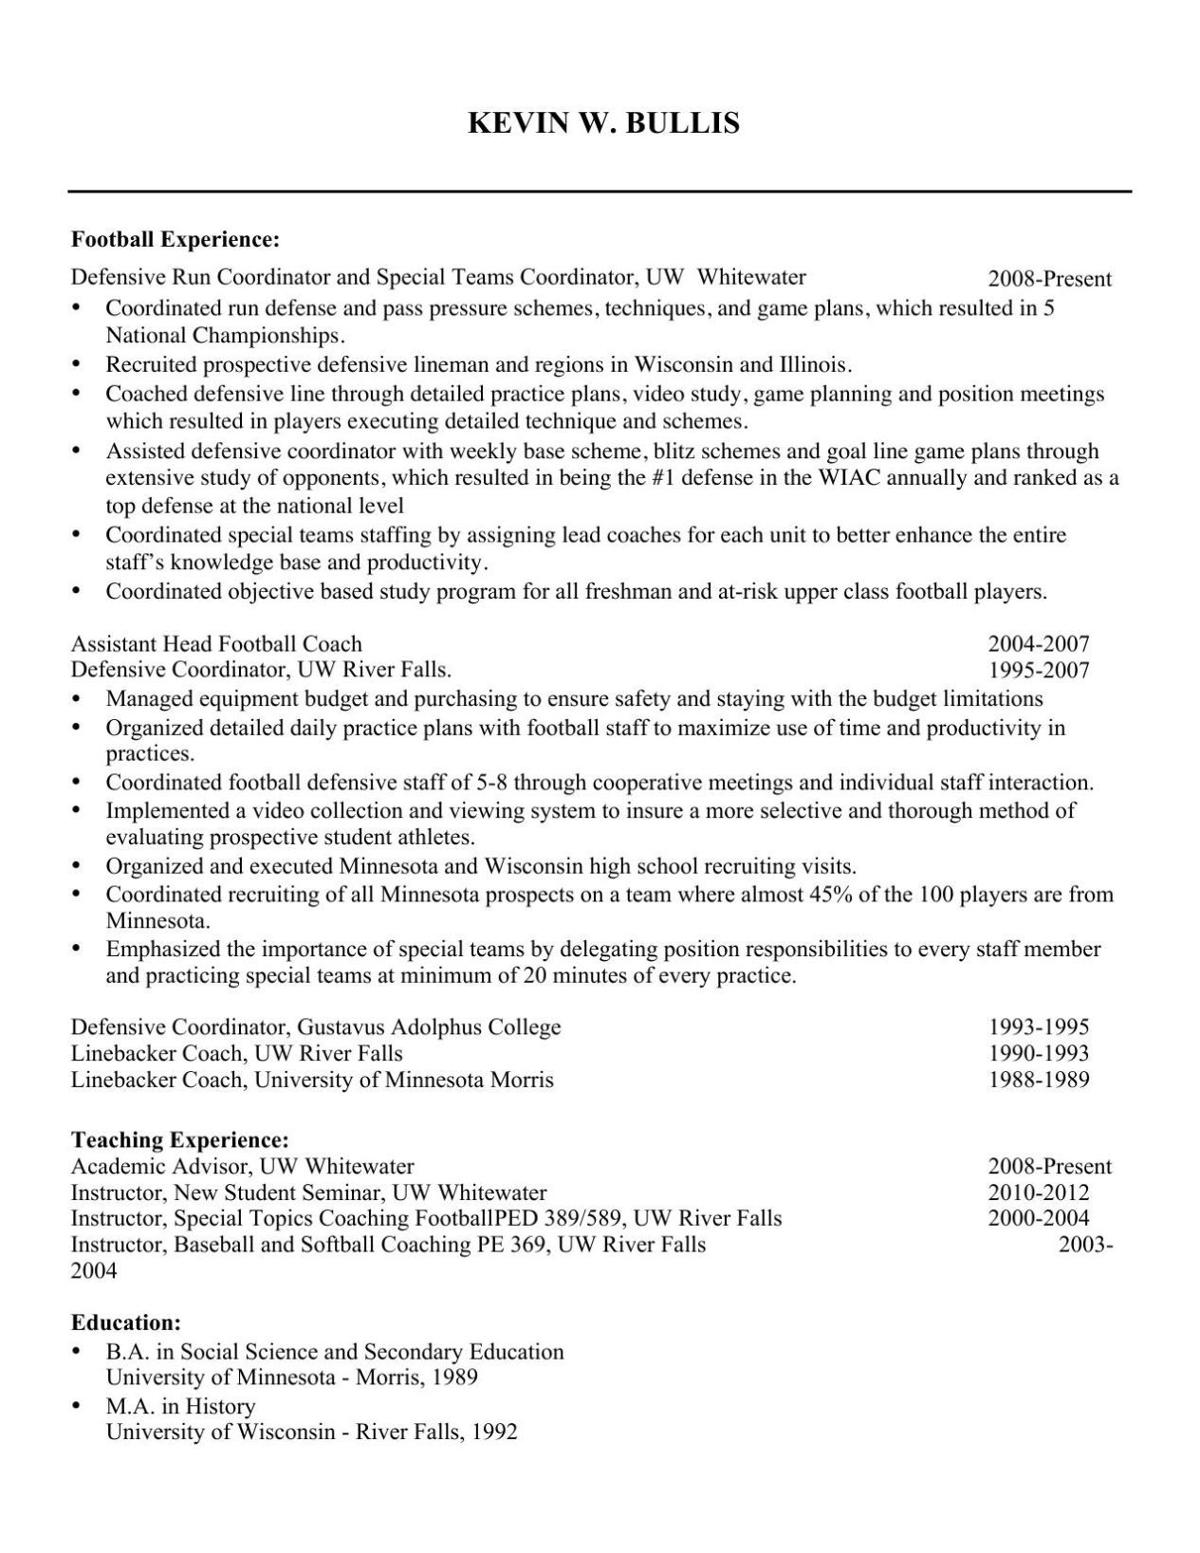 Kevin Bullis: Resume for UW-Whitewater\'s new head football coach ...